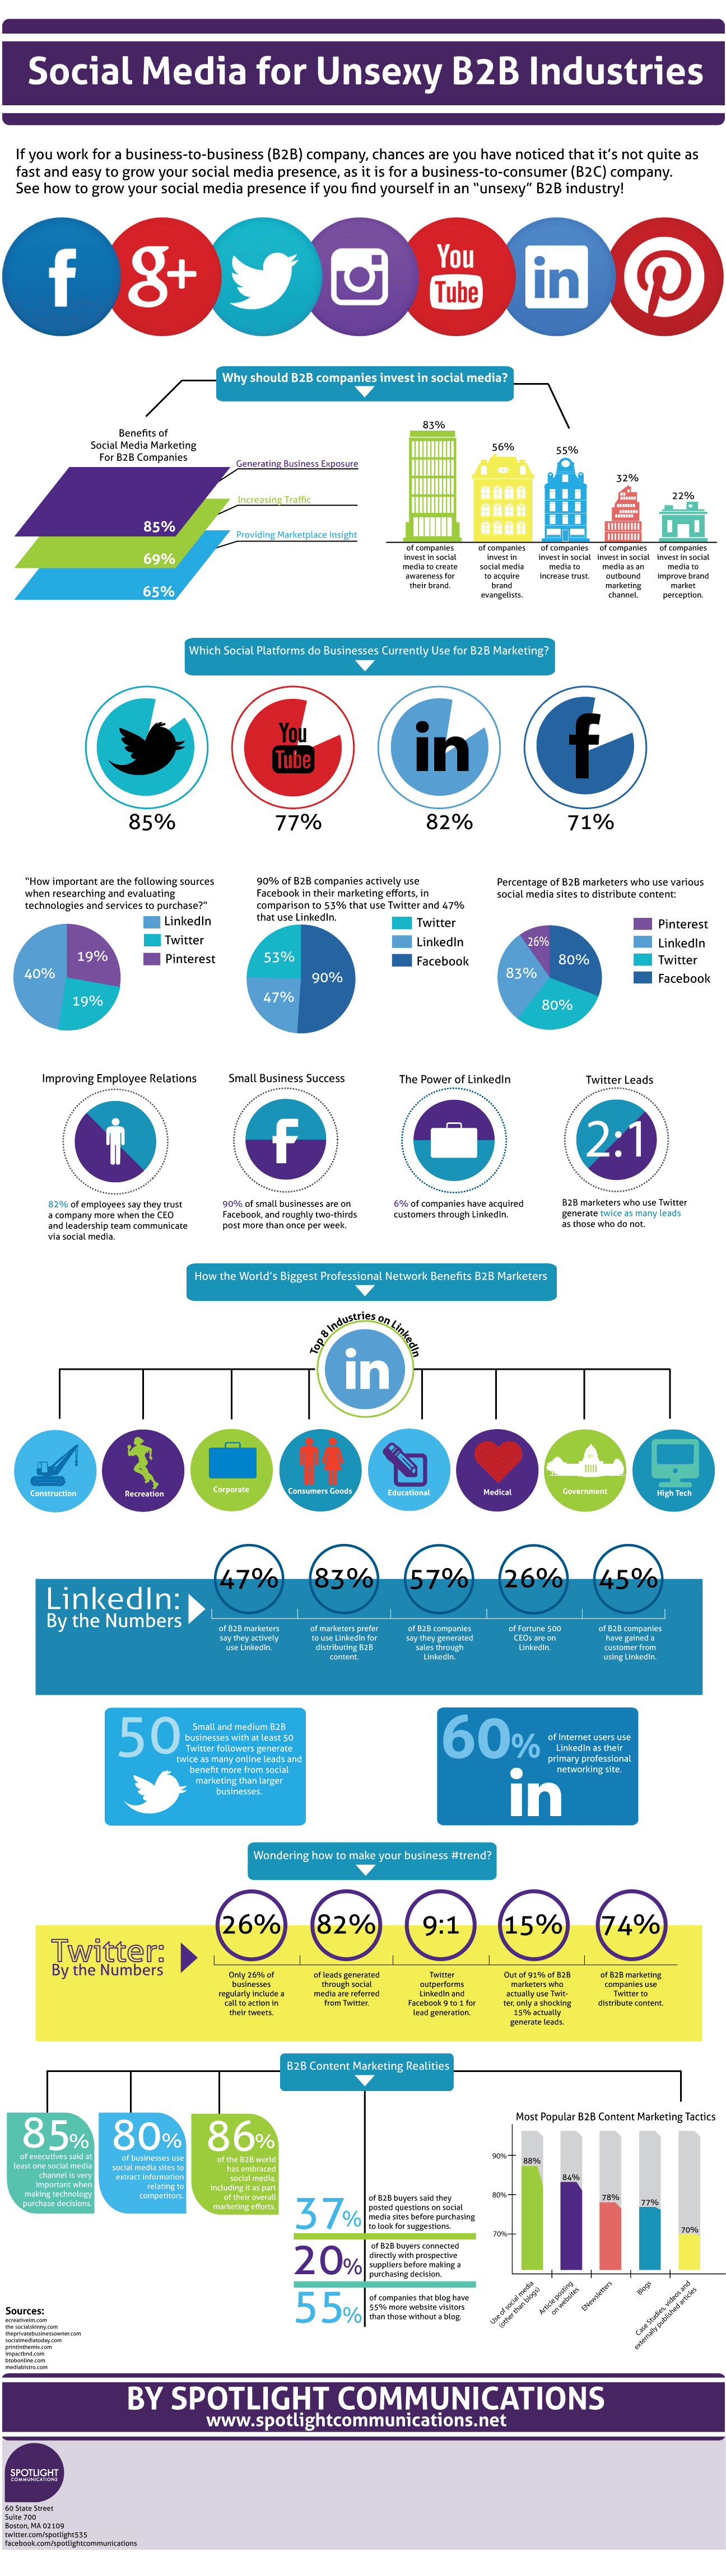 Social media voor B2B- do or don't [infographic]